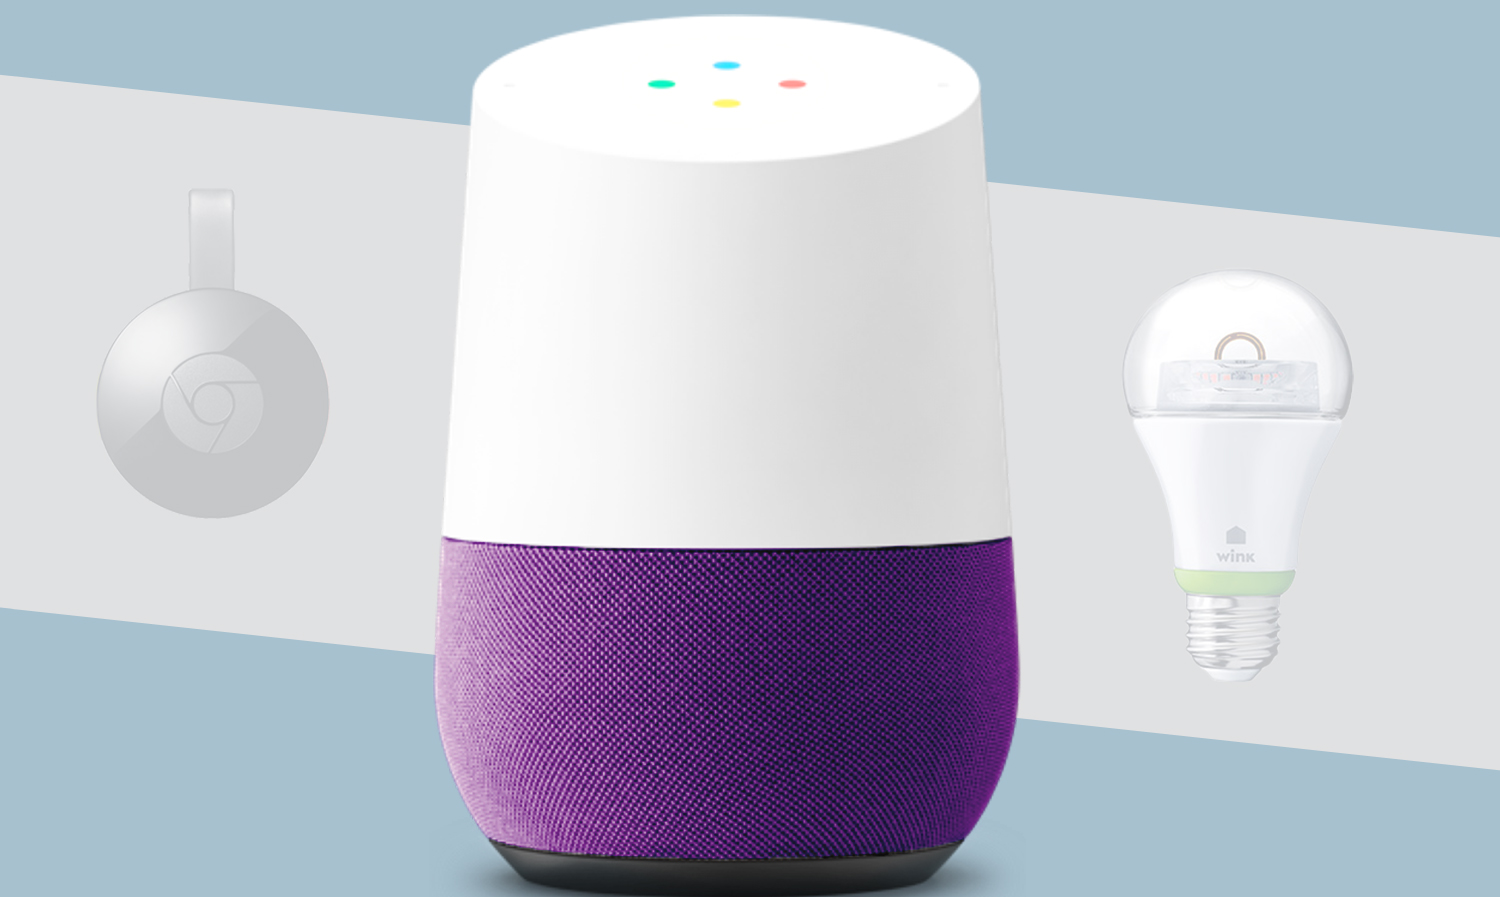 Best Google Home Compatible Smart Home Devices 2019 | Tom's